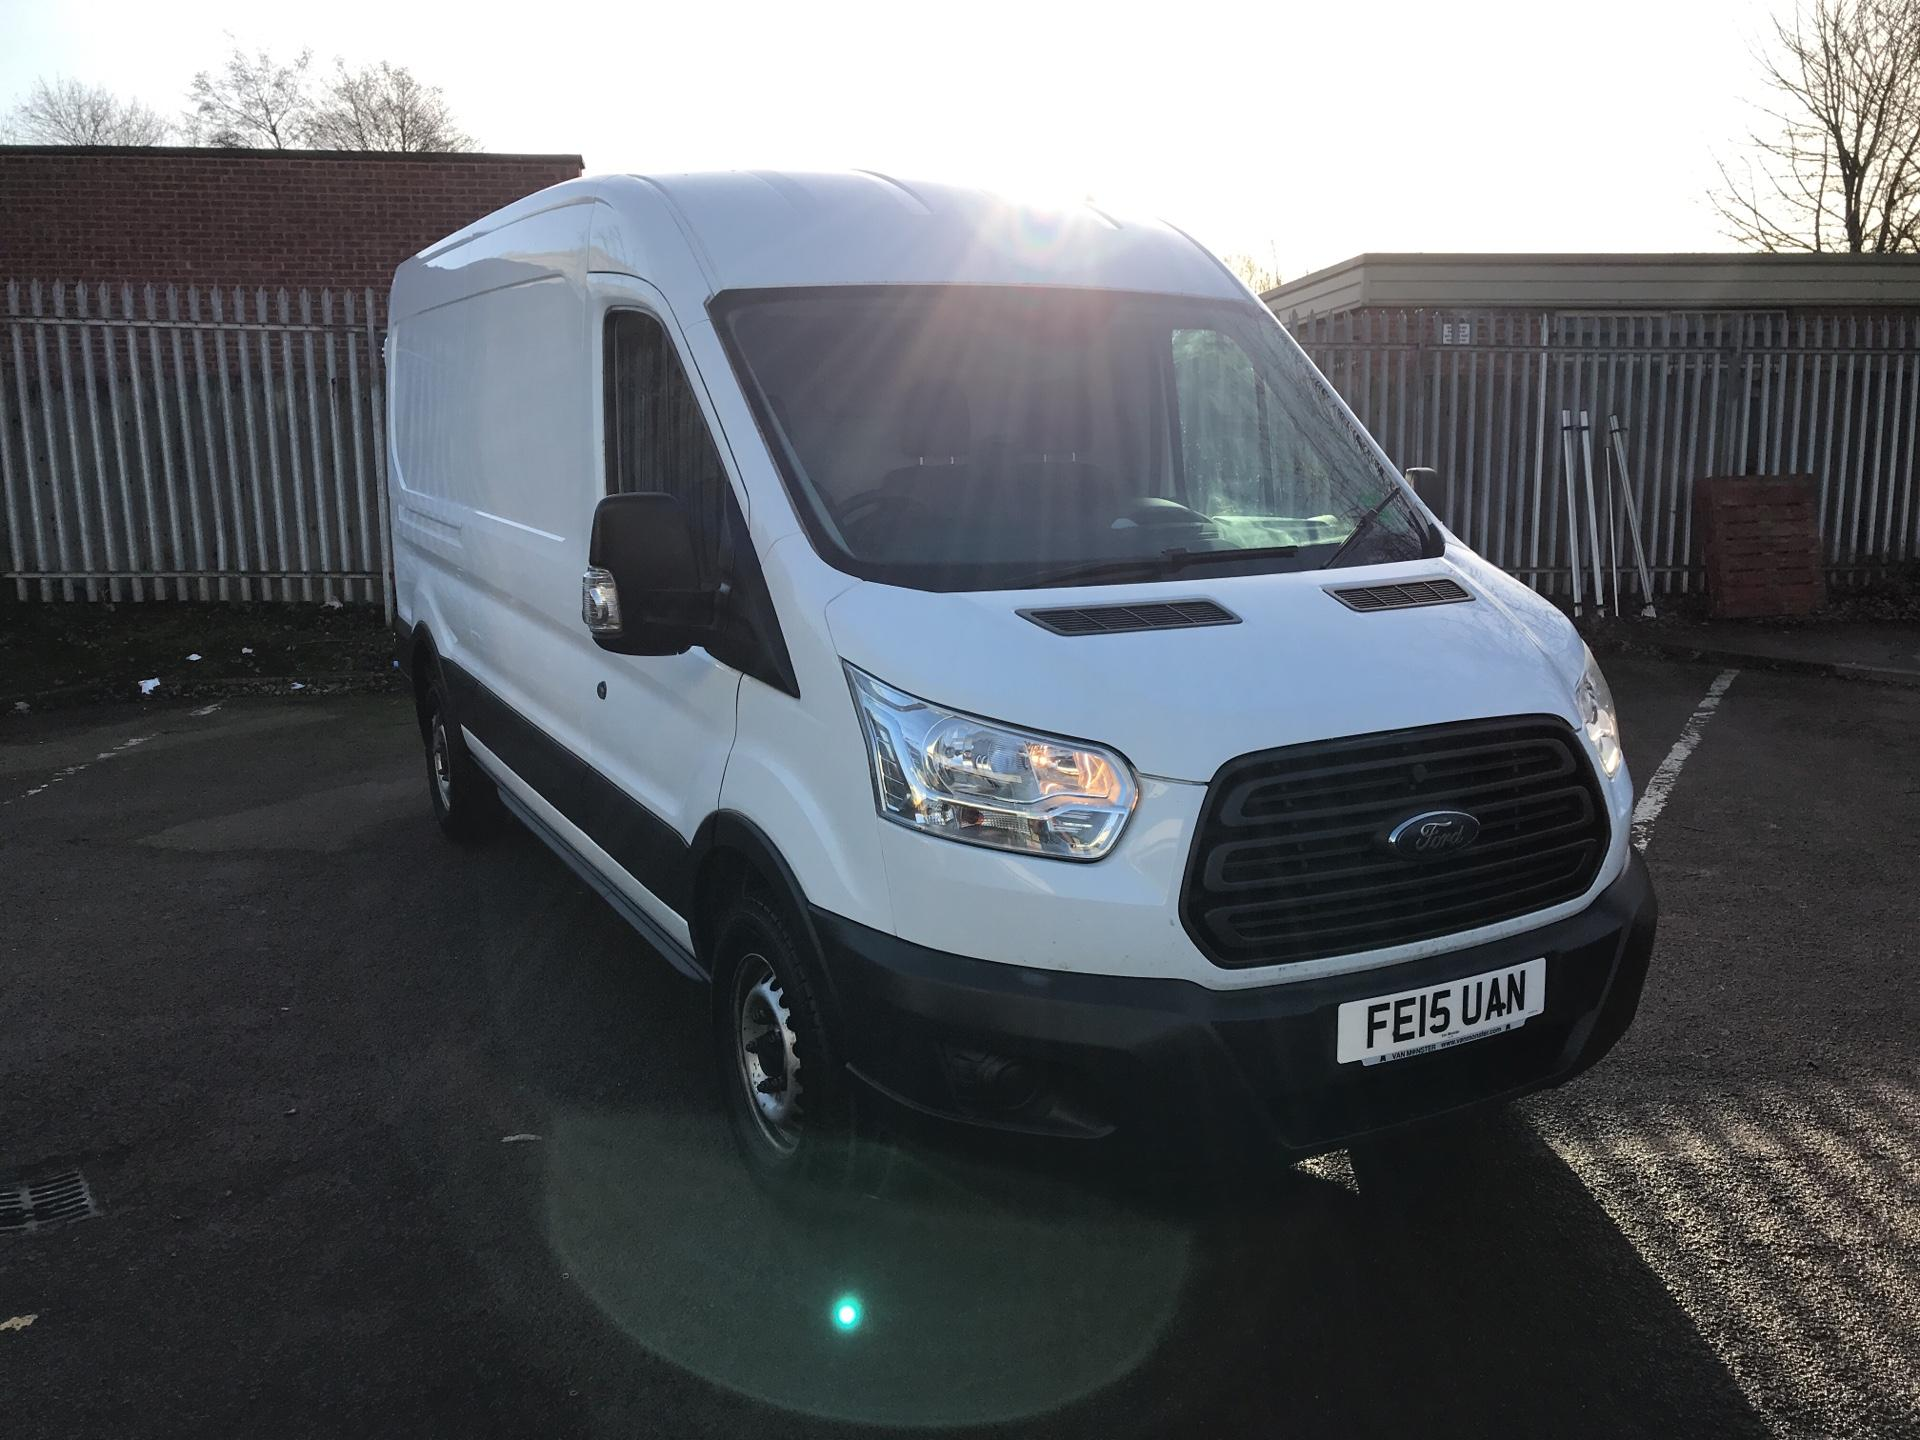 2015 Ford Transit 350 L3 H2 VAN 125PS EURO 5 *VALUE RANGE VEHICLE - CONDITION REFLECTED IN PRICE* (FE15UAN)